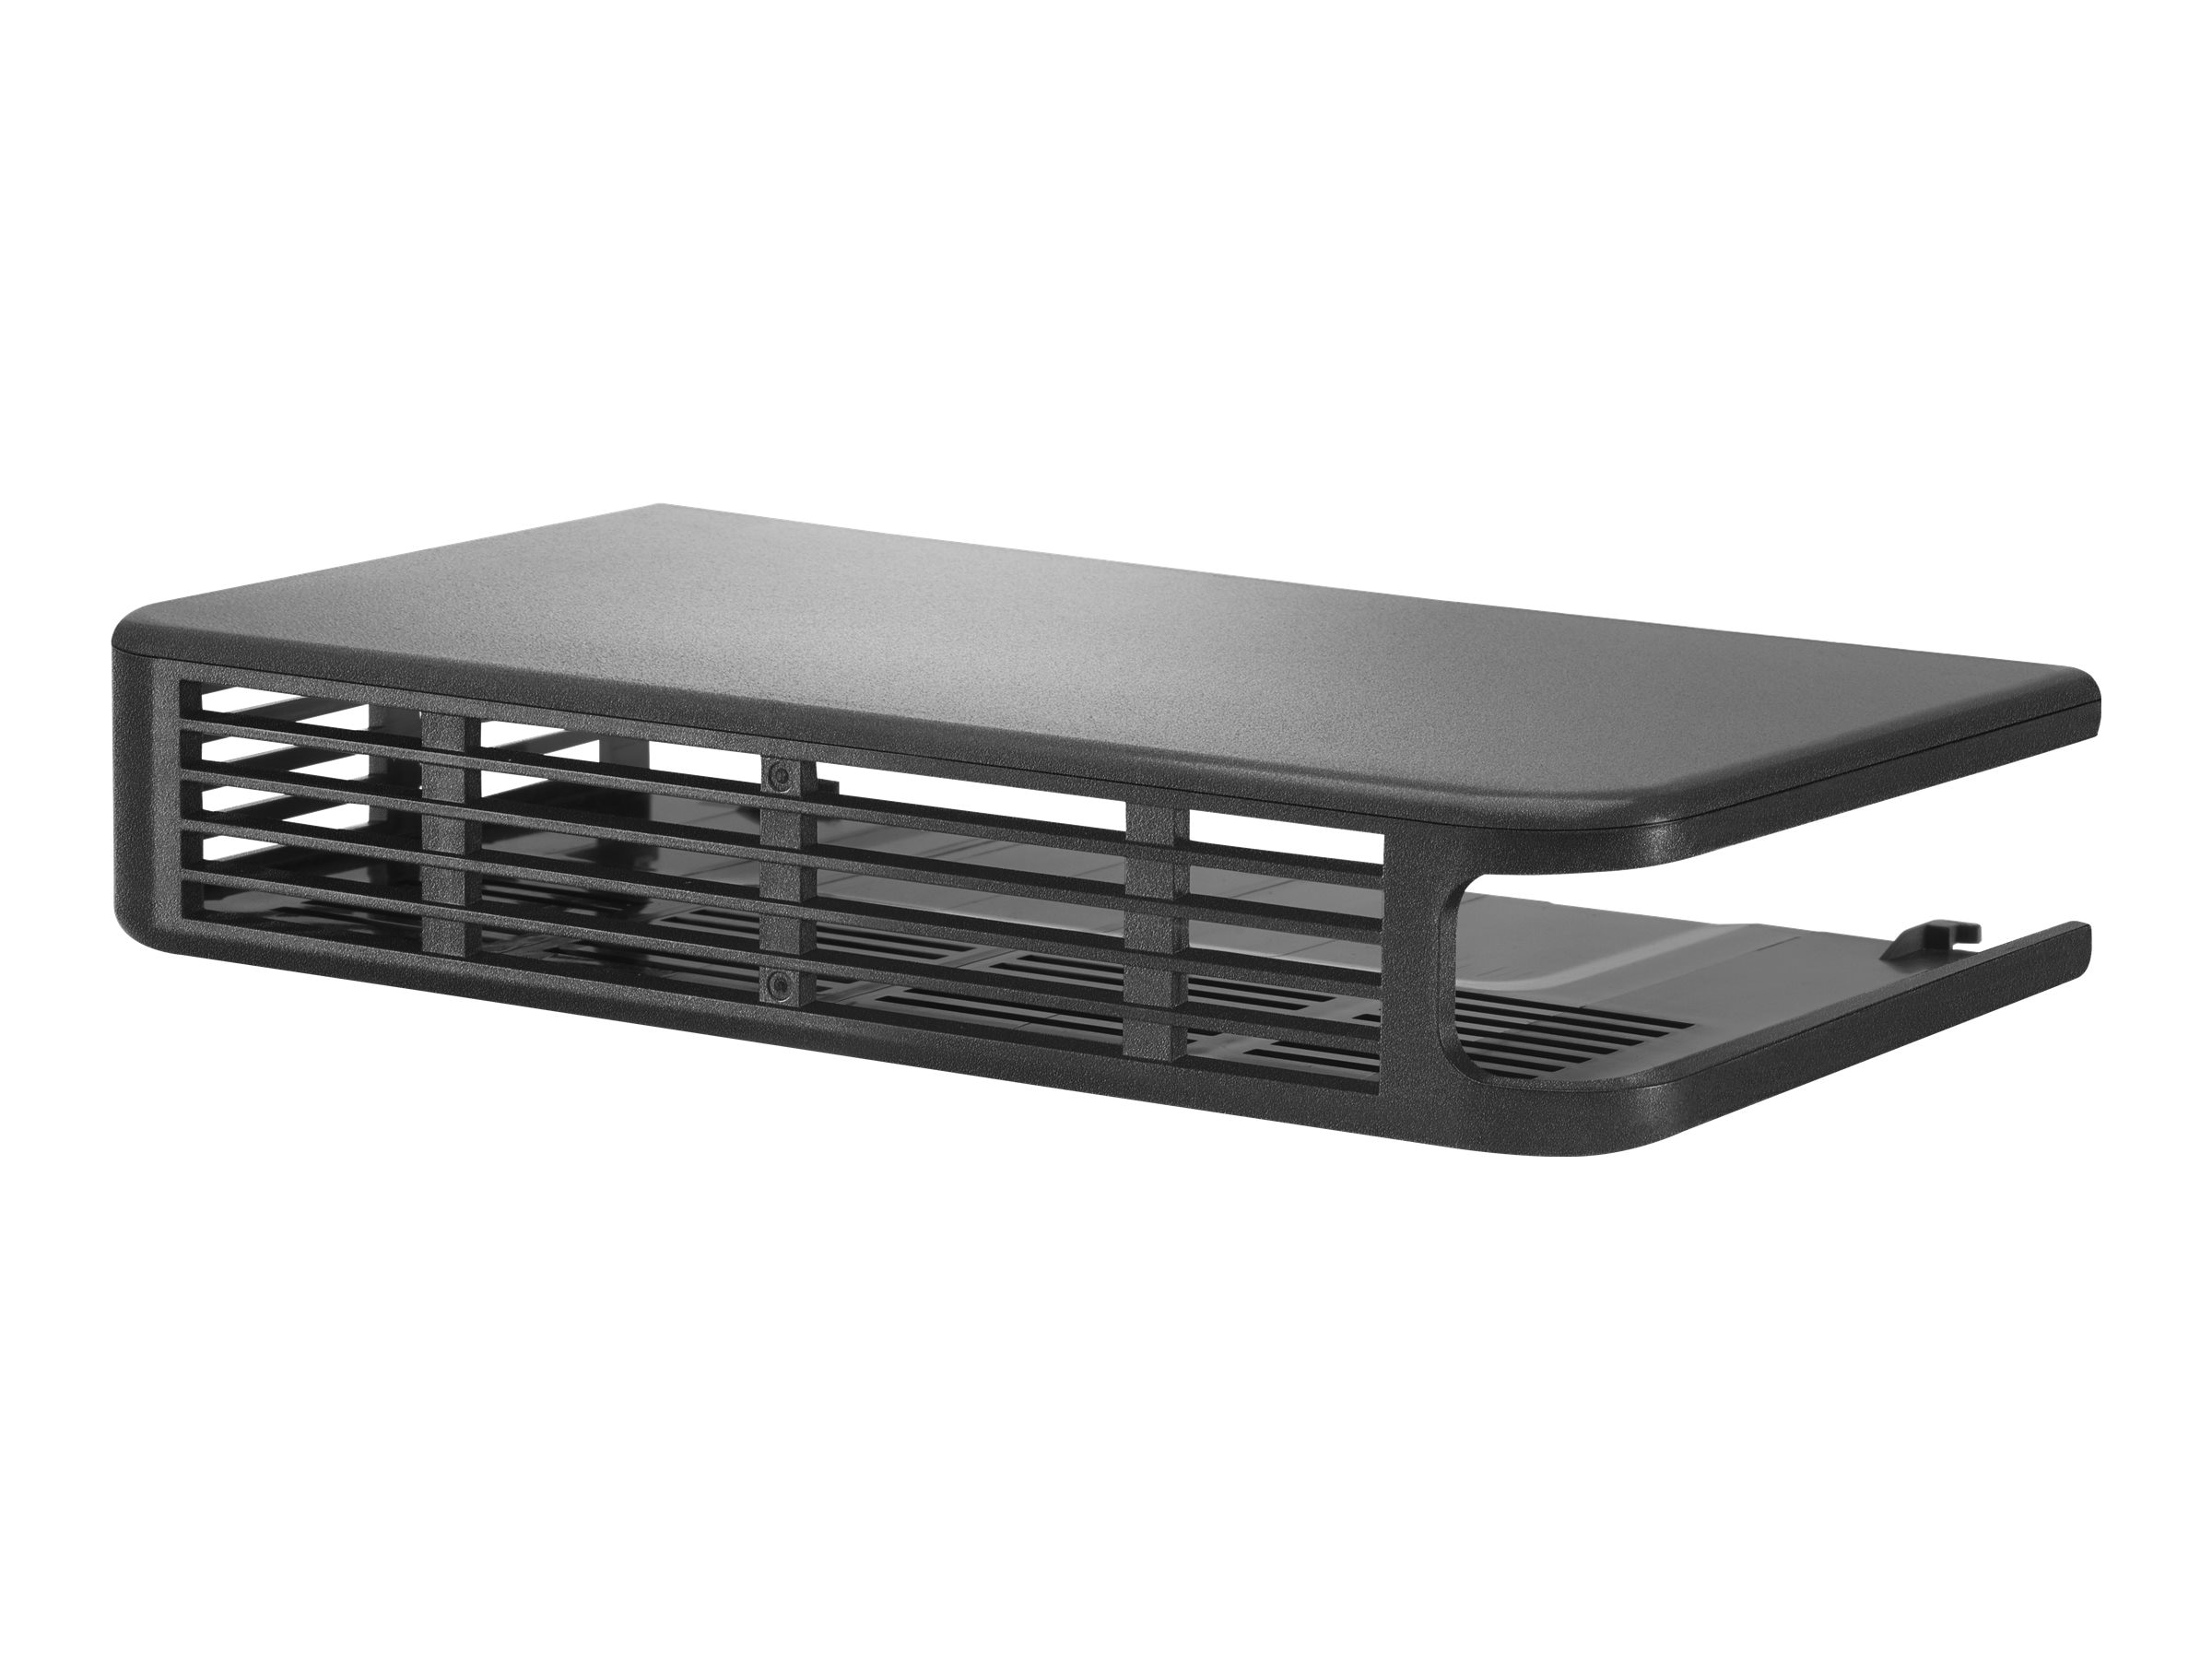 HP Desktop Mini Port Cover Kit